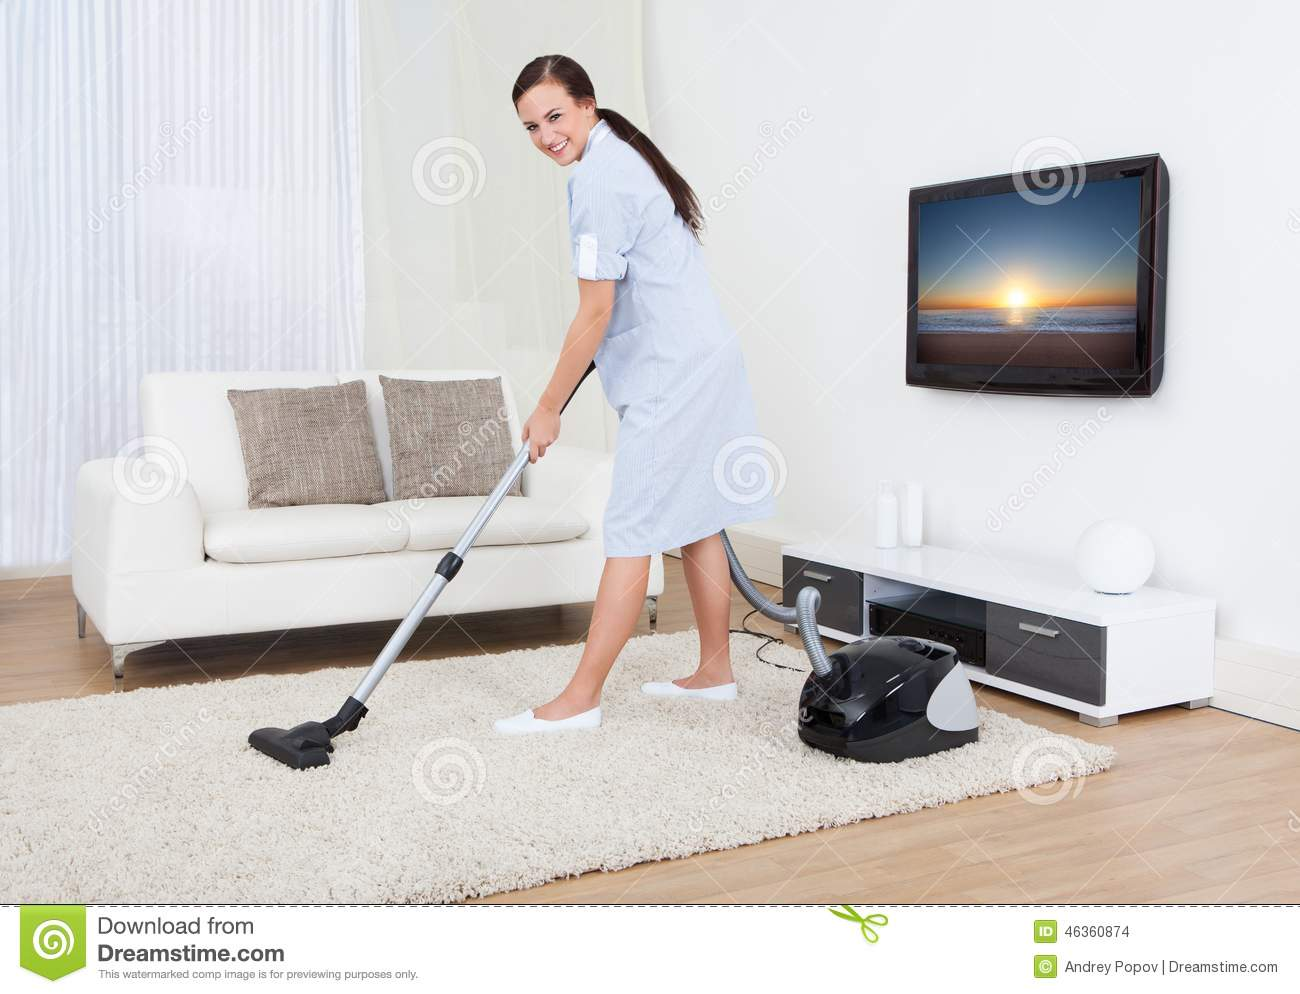 Maid Cleaning Carpet With Vacuum Cleaner Stock Photo